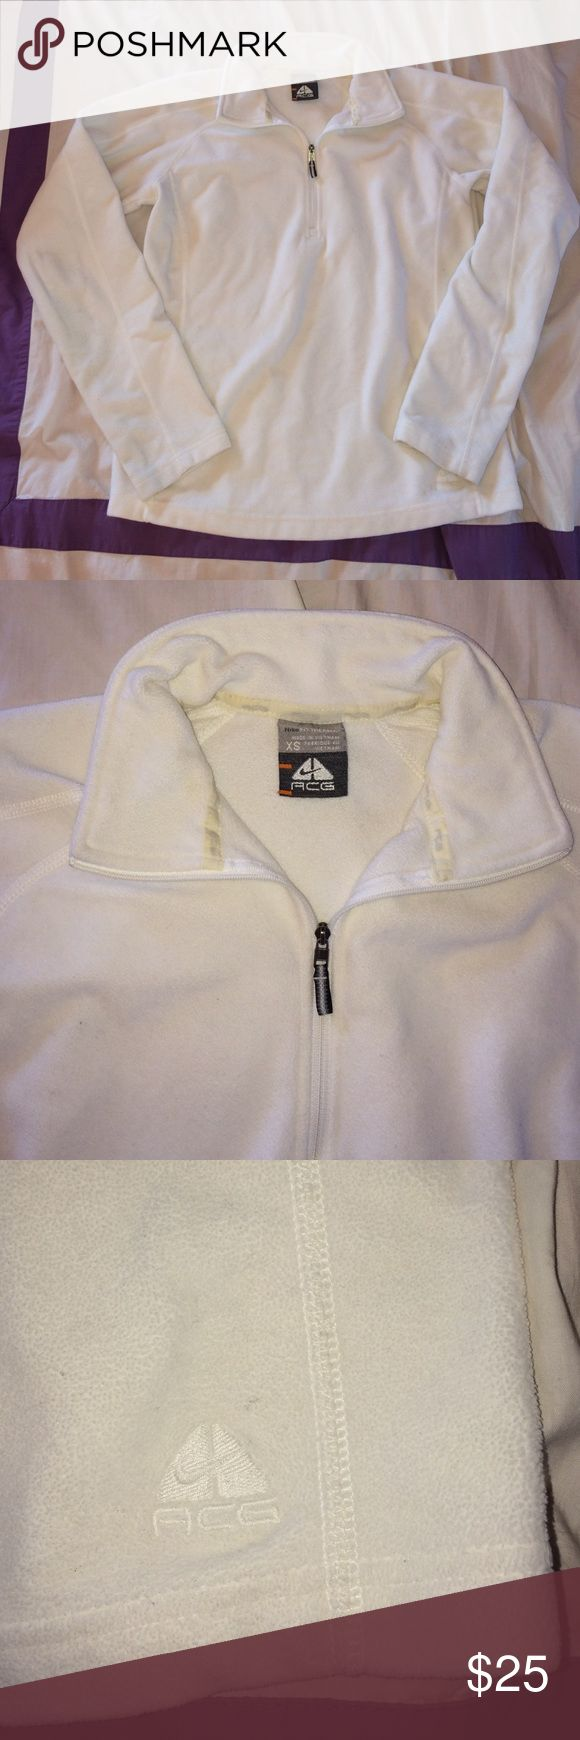 Nike ACG White Fit Therma White thermal from Nike ACG in good condition. Super warm and cozy! Great for skiing or under a vest in the fall! Nike Tops Sweatshirts & Hoodies